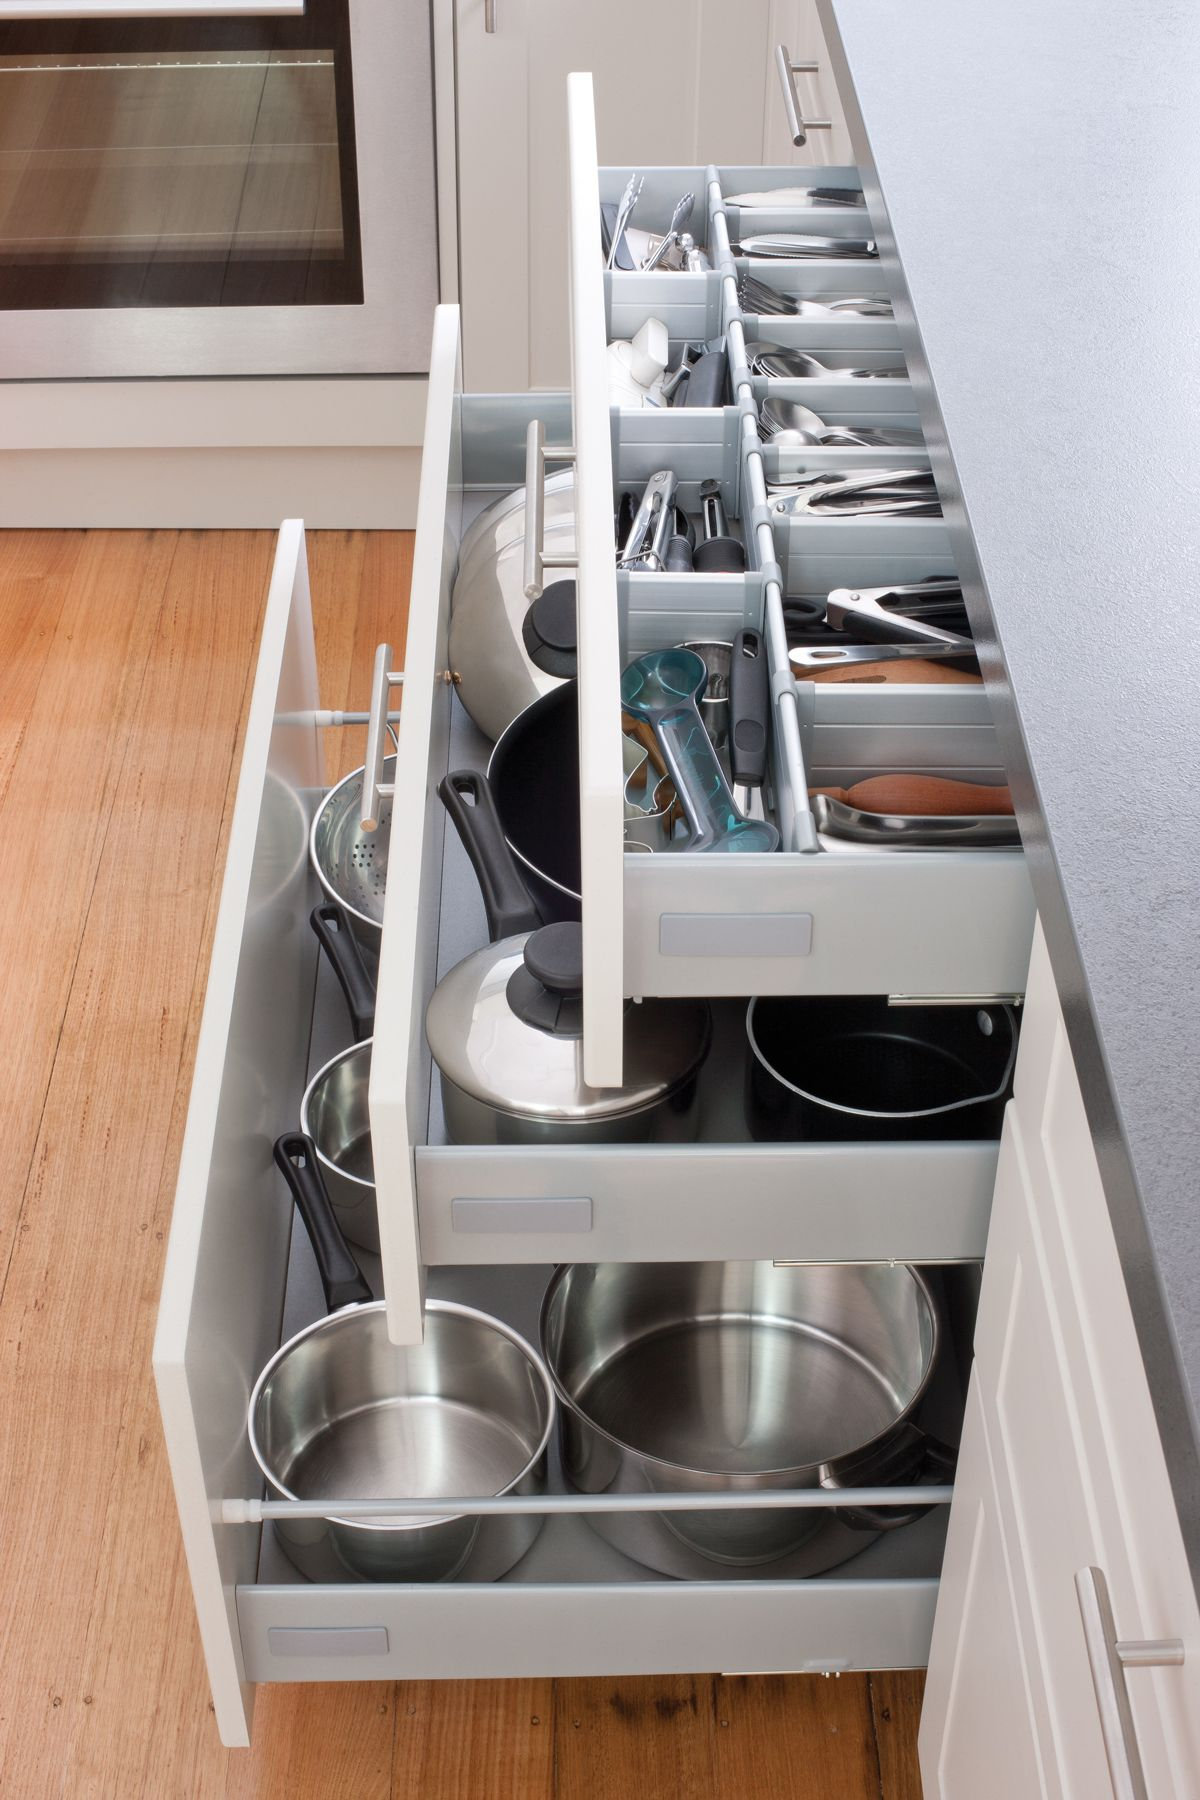 Keep Your Kitchen In Order With Our Pot Drawers And Cutlery Drawers! Visit  Kaboodle. Part 62